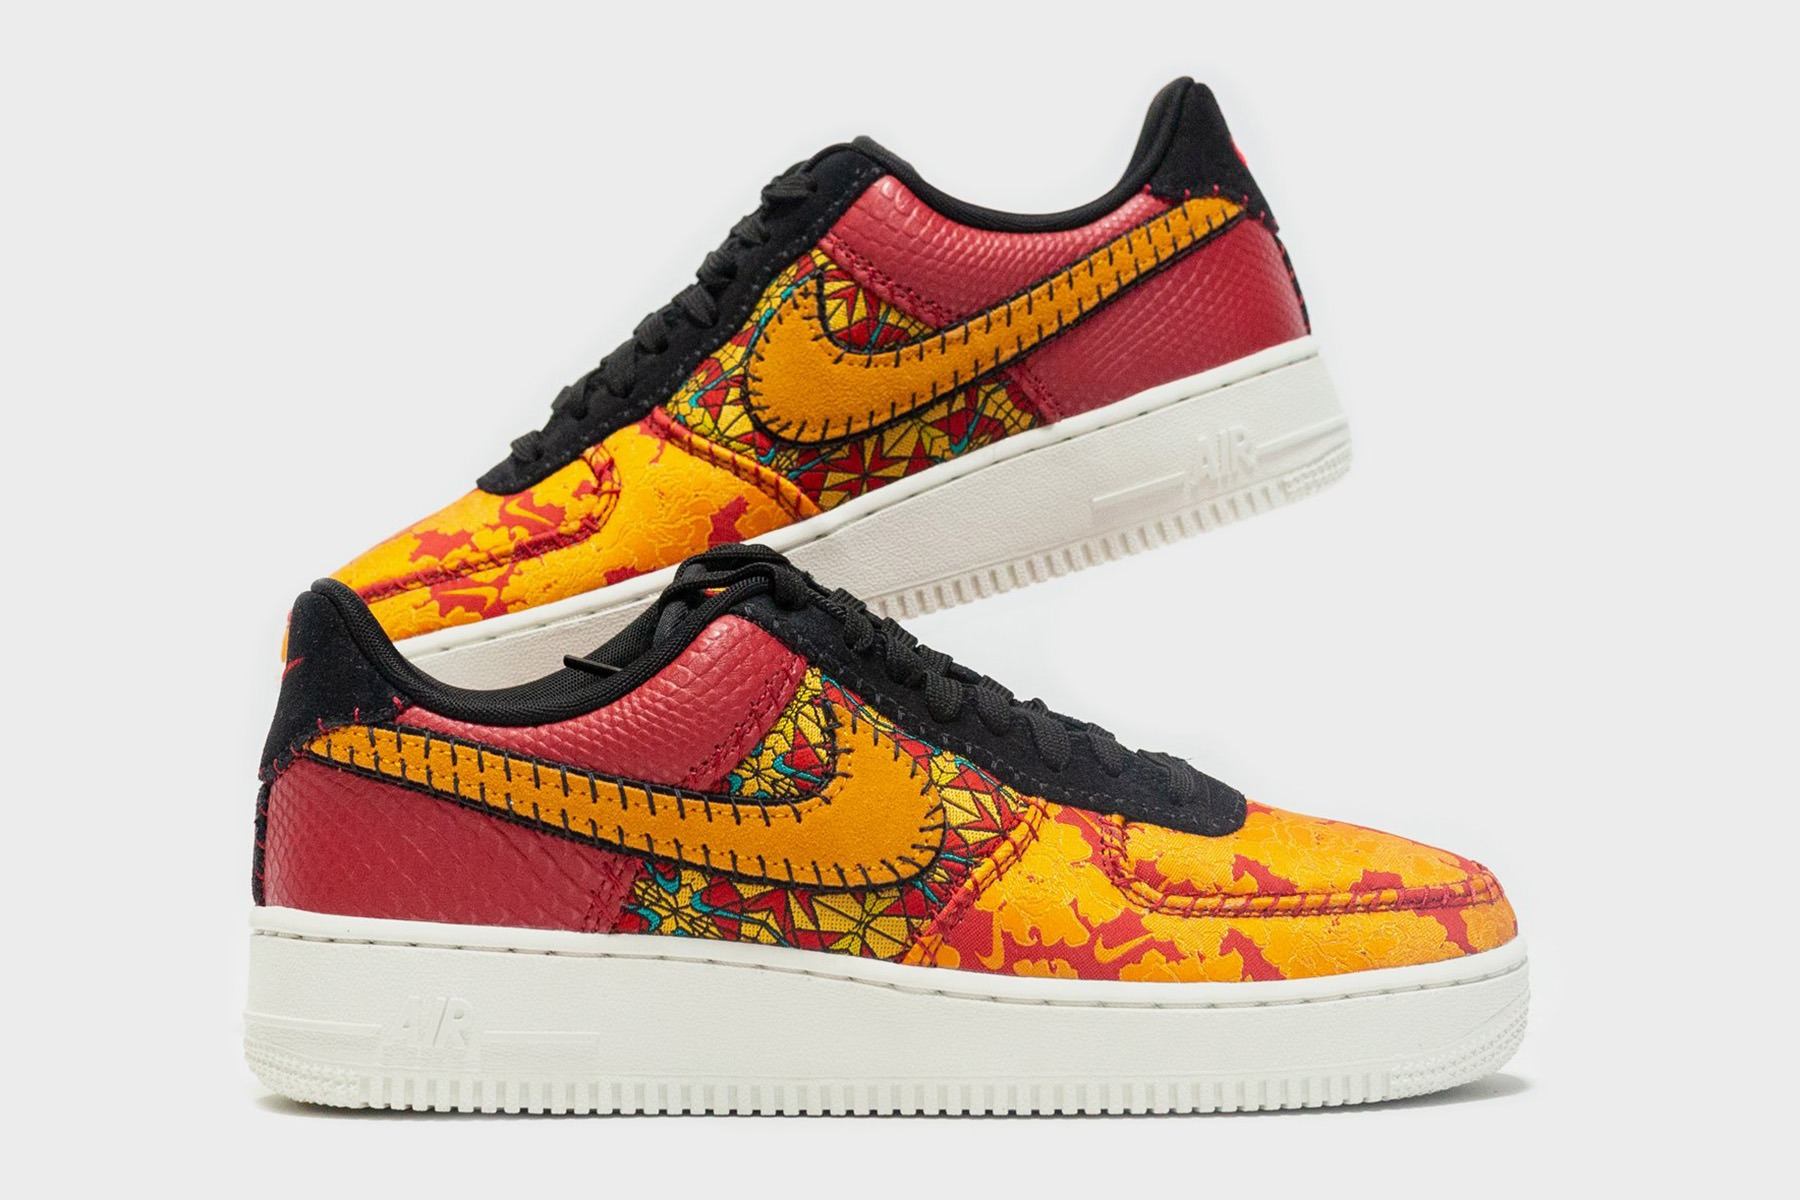 low priced 47c23 d8950 Nike Sportswear is working with multiple textures and patterns to style its  latest Air Force 1 release. The drop features an antique style floral  pattern on ...